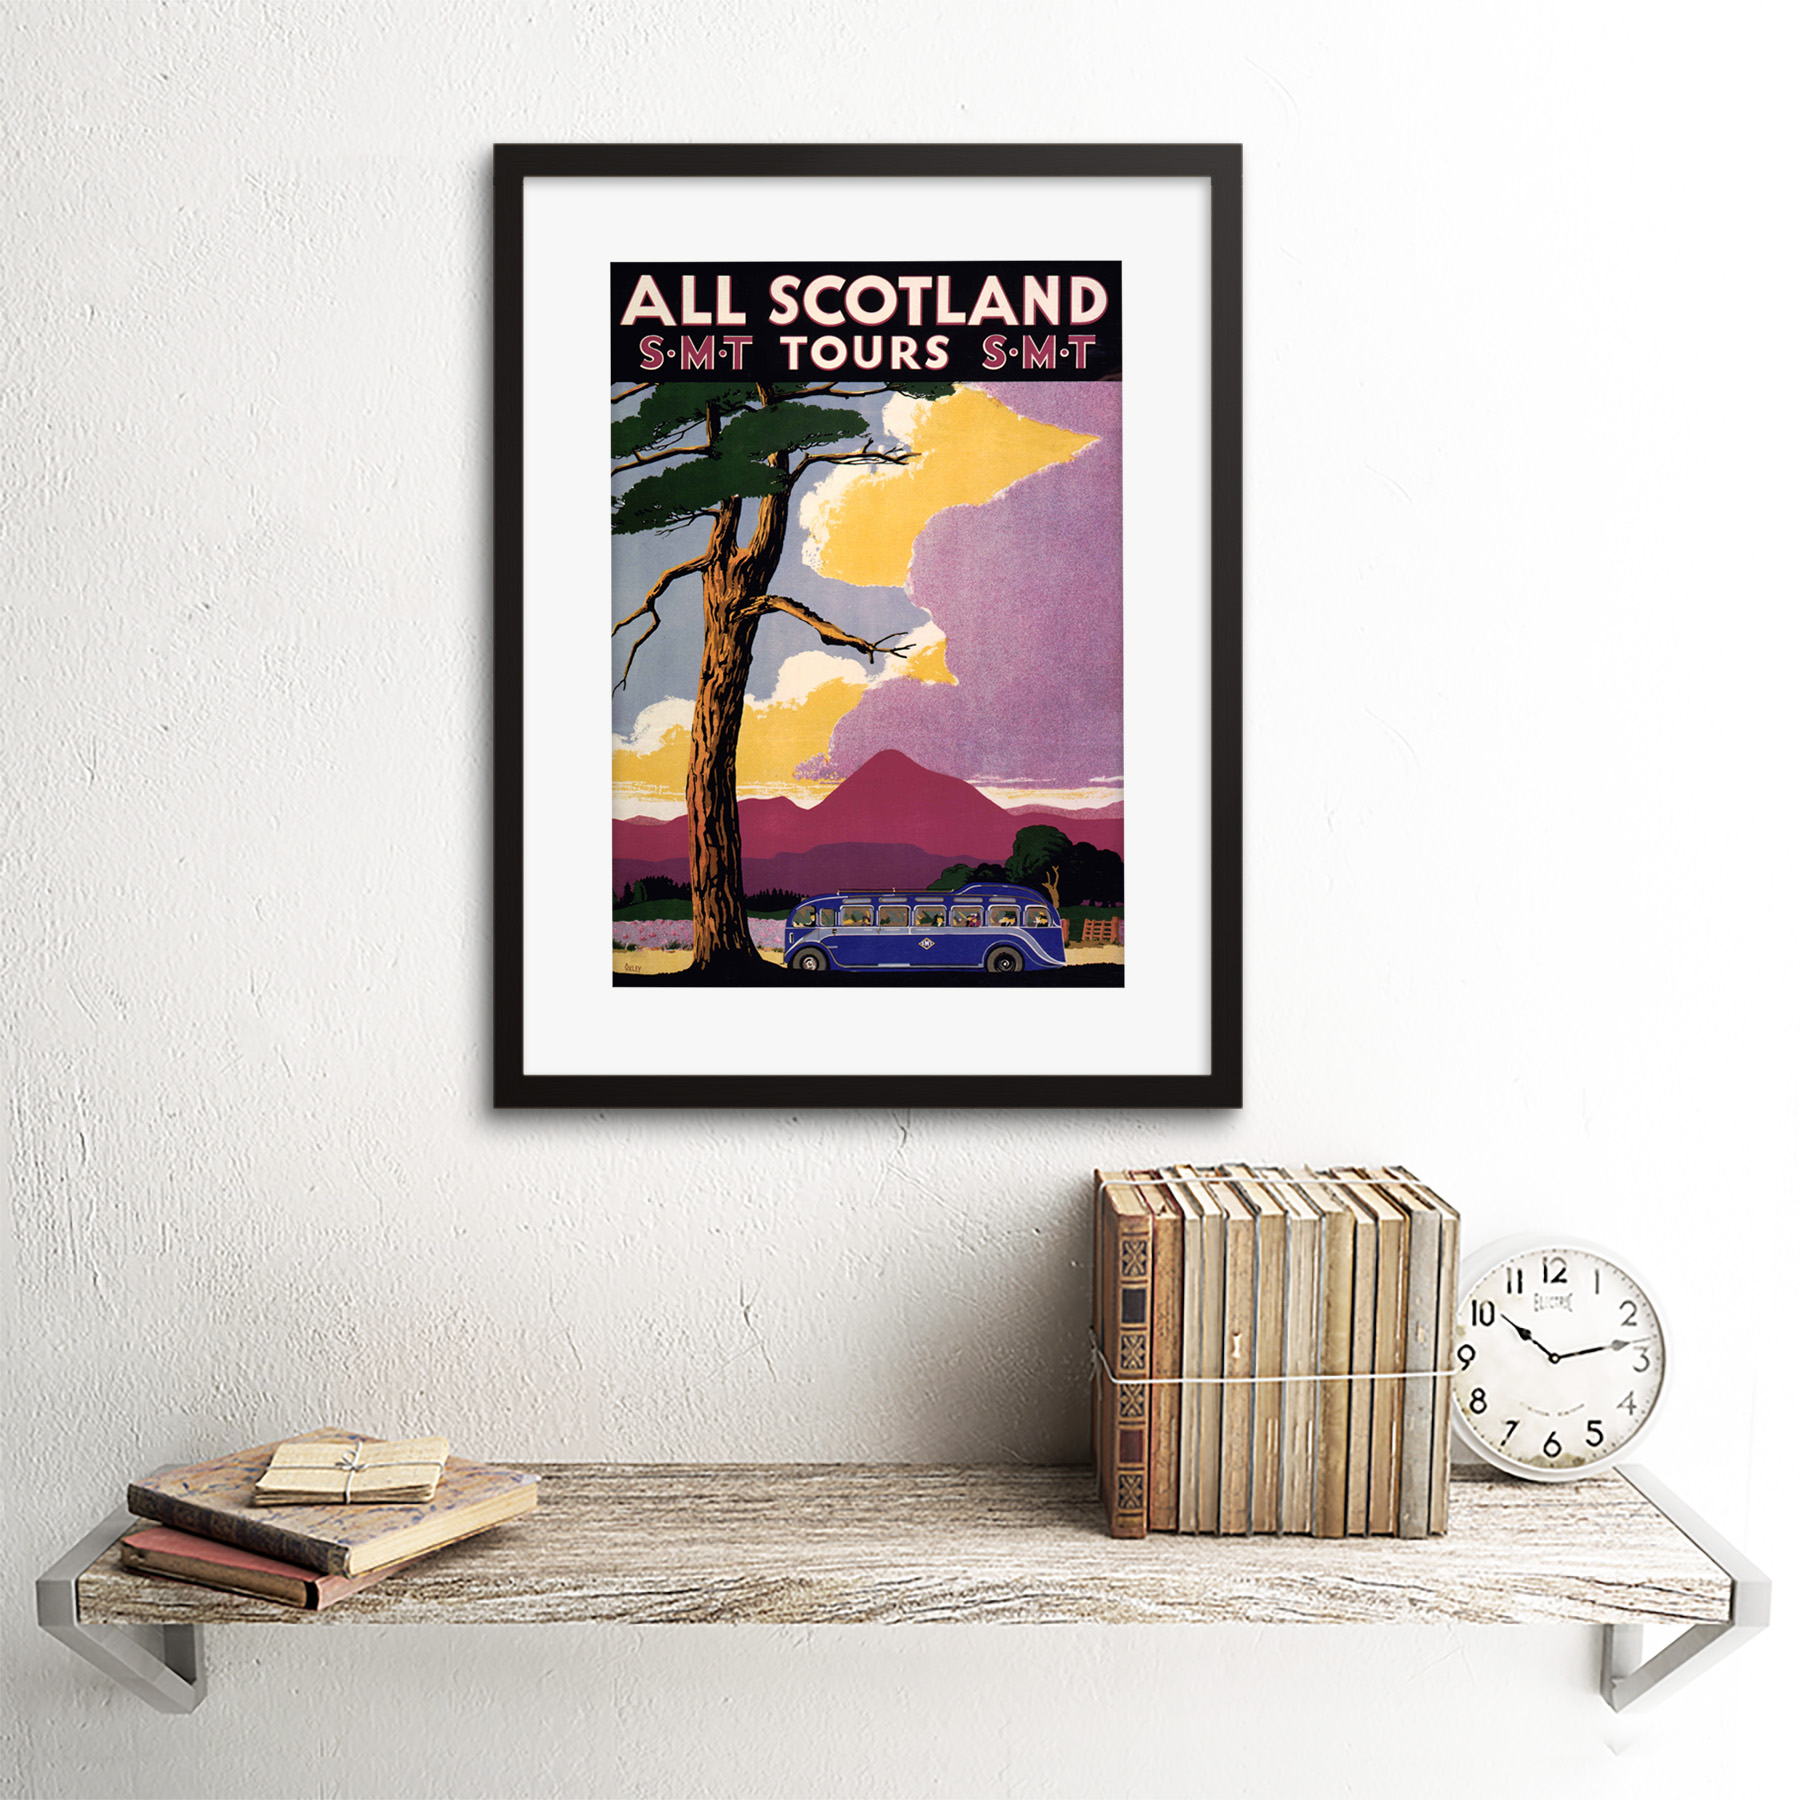 thumbnail 3 - Travel-Scotland-Bus-Scenery-Tree-Framed-Art-Print-Picture-Mount-12x16-Inch